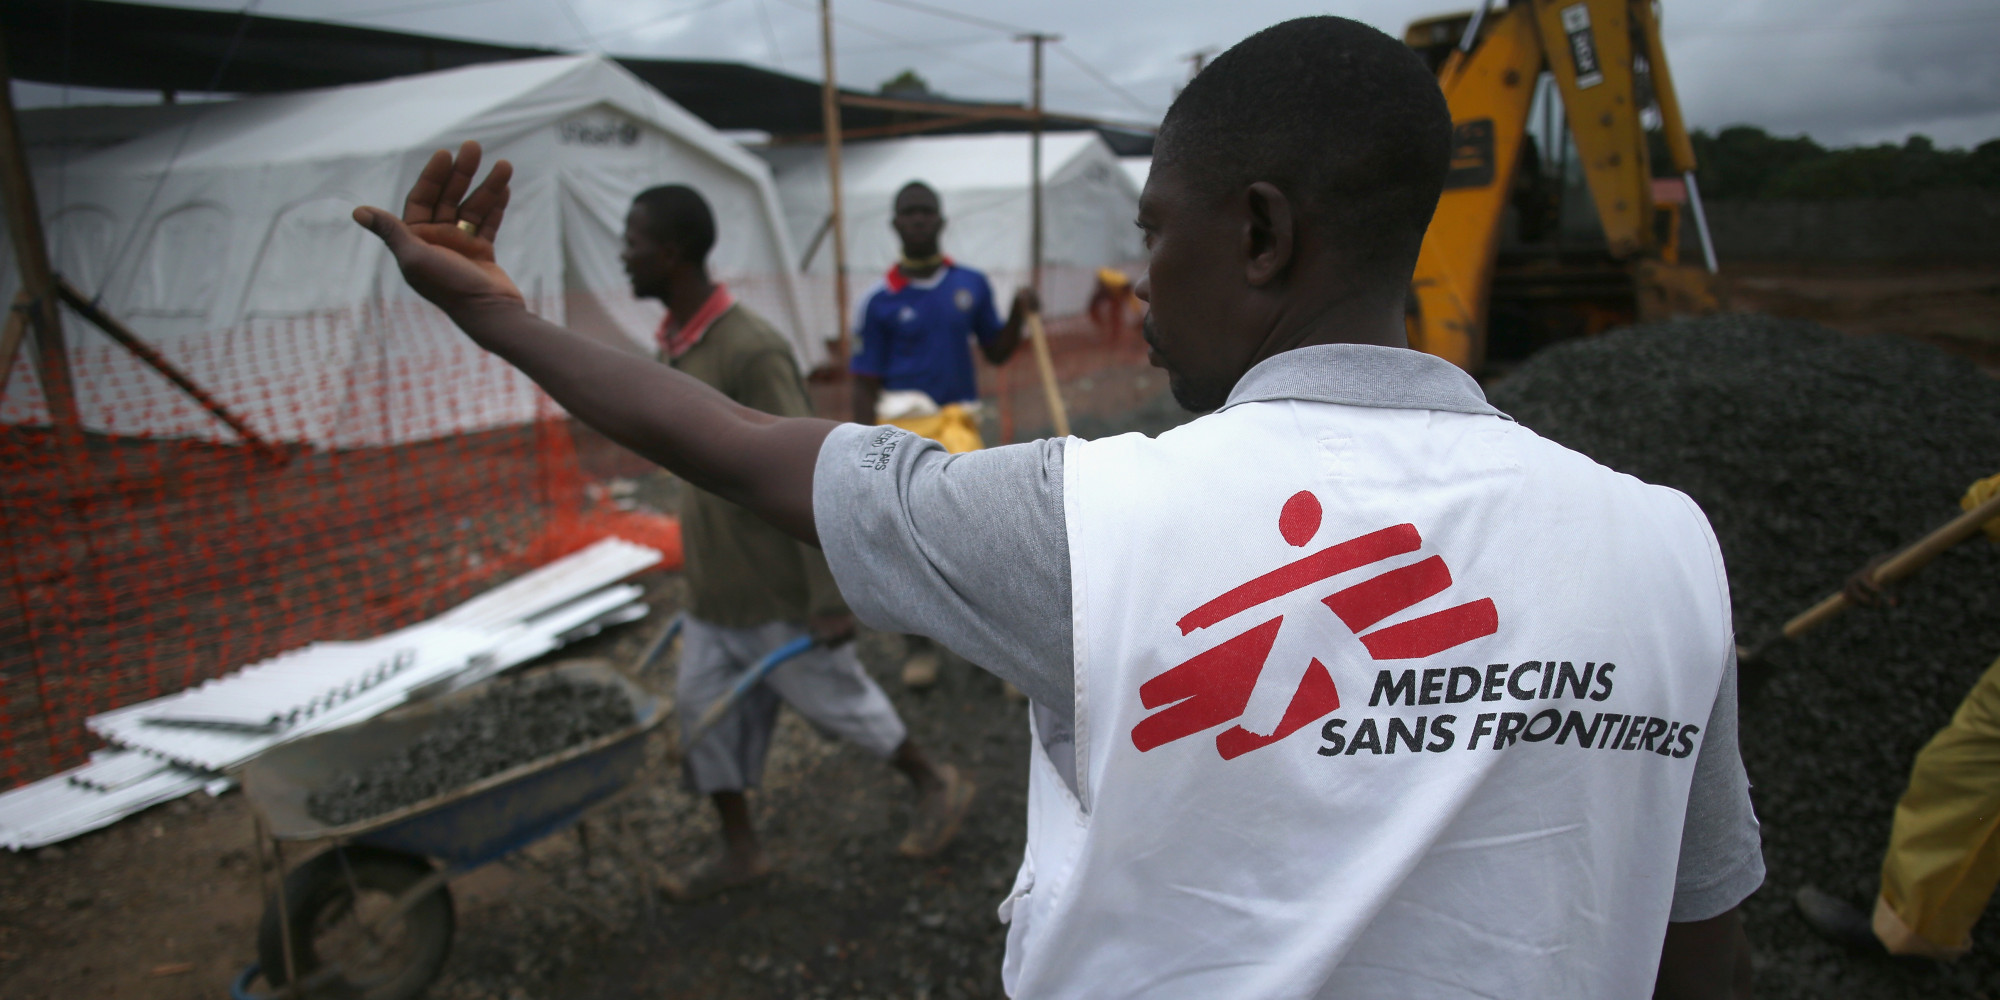 MONROVIA, LIBERIA - AUGUST 17:  A Doctors Without Borders (MSF), staffer supervises as construction workers complete the new MSF Ebola treatment center on August 17, 2014 near Monrovia, Liberia. The facility initially has 120 beds, making it the largest such center for Ebola treatment and isolation in history and MSF plans to expand it to a 350-bed capacity. Tents, beds and much of the medical supplies at the center were provided by UNICEF. The virus has killed more than 1,000 people in four African countries, and Liberia now has had more deaths than any other country.  (Photo by John Moore/Getty Images)